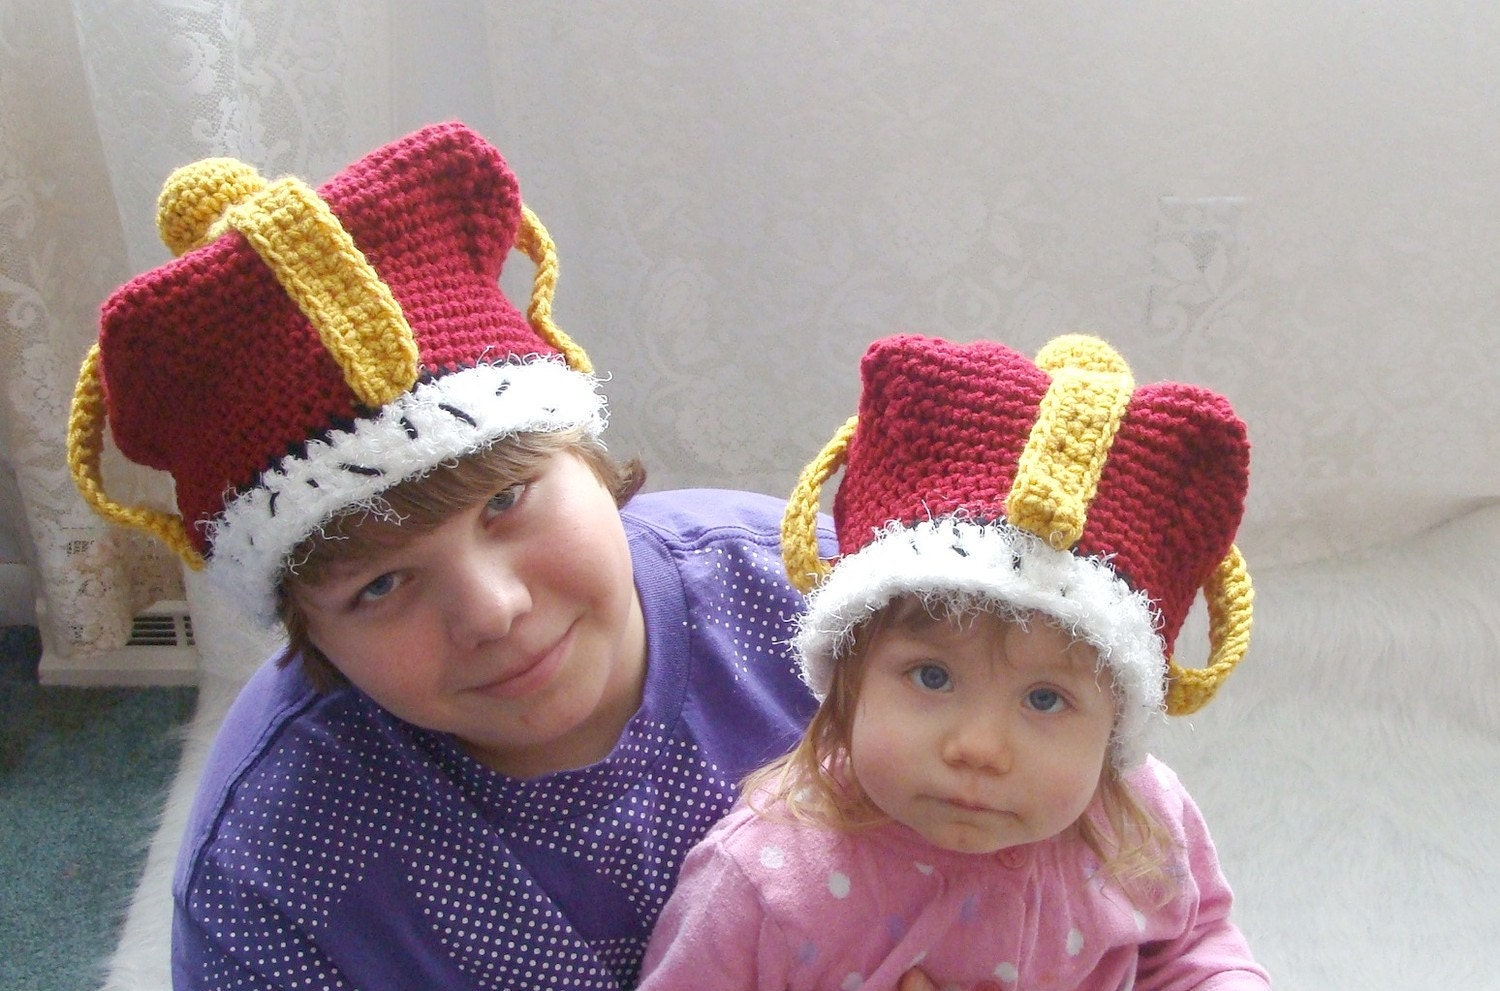 Crown Hat Crochet Pattern Pdf531 Infants To Adults Sizes Etsy